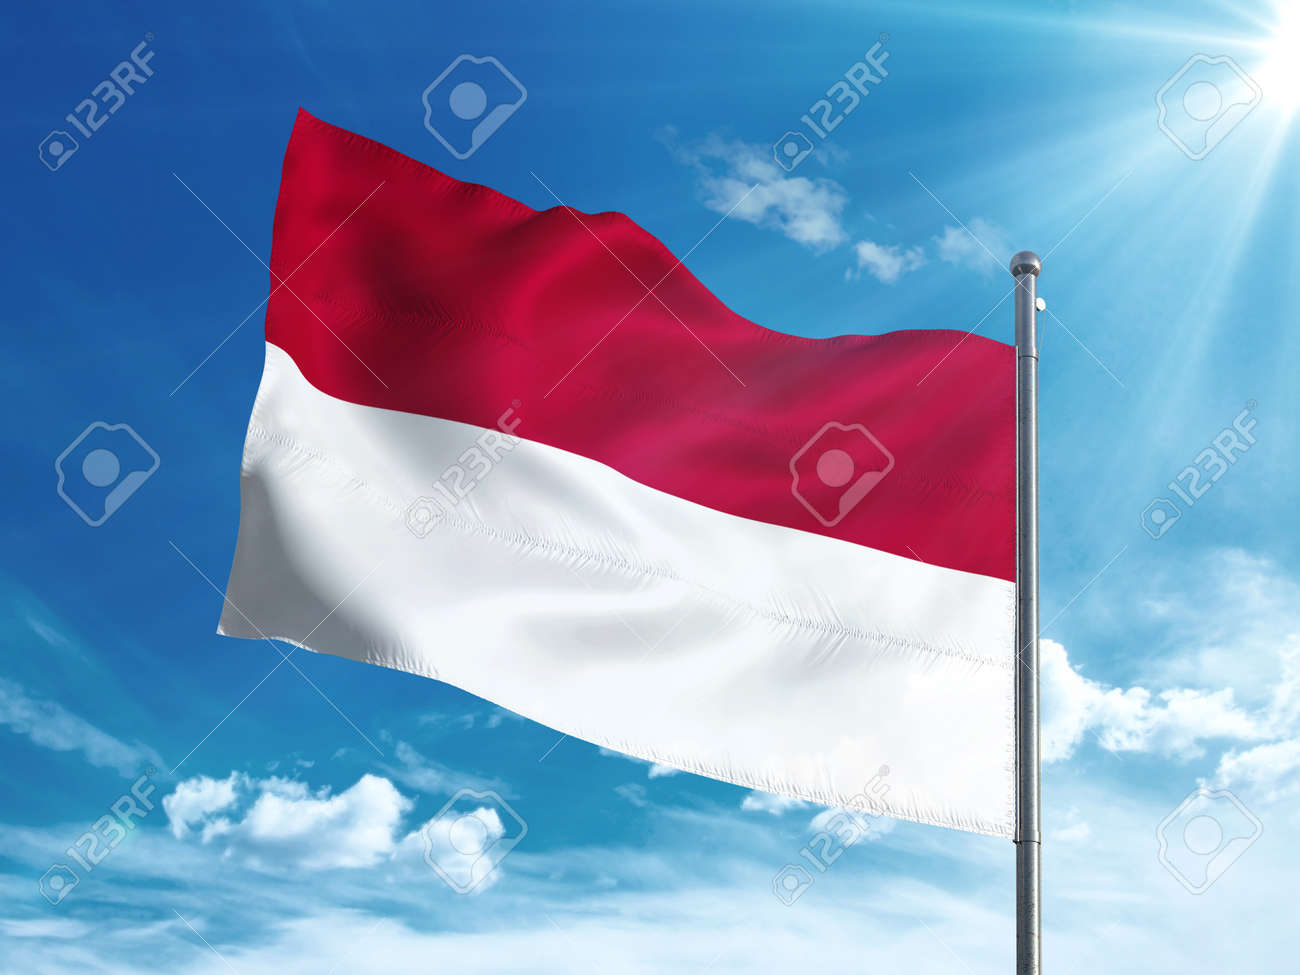 Indonesia flag waving in the blue sky - 82856053